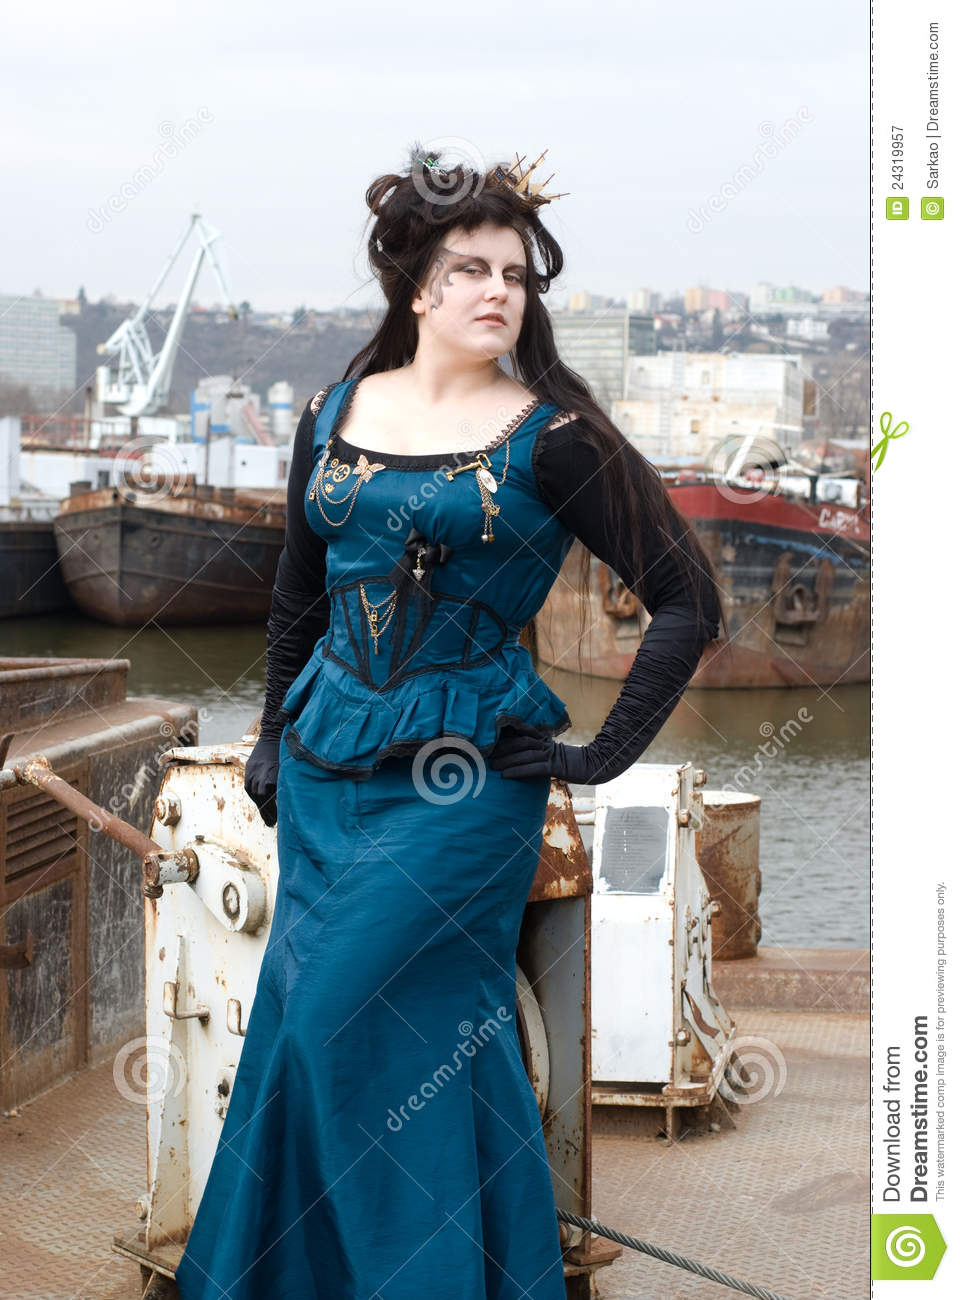 Steampunk model royalty free stock photography image 24319957 - Steampunk mobel ...